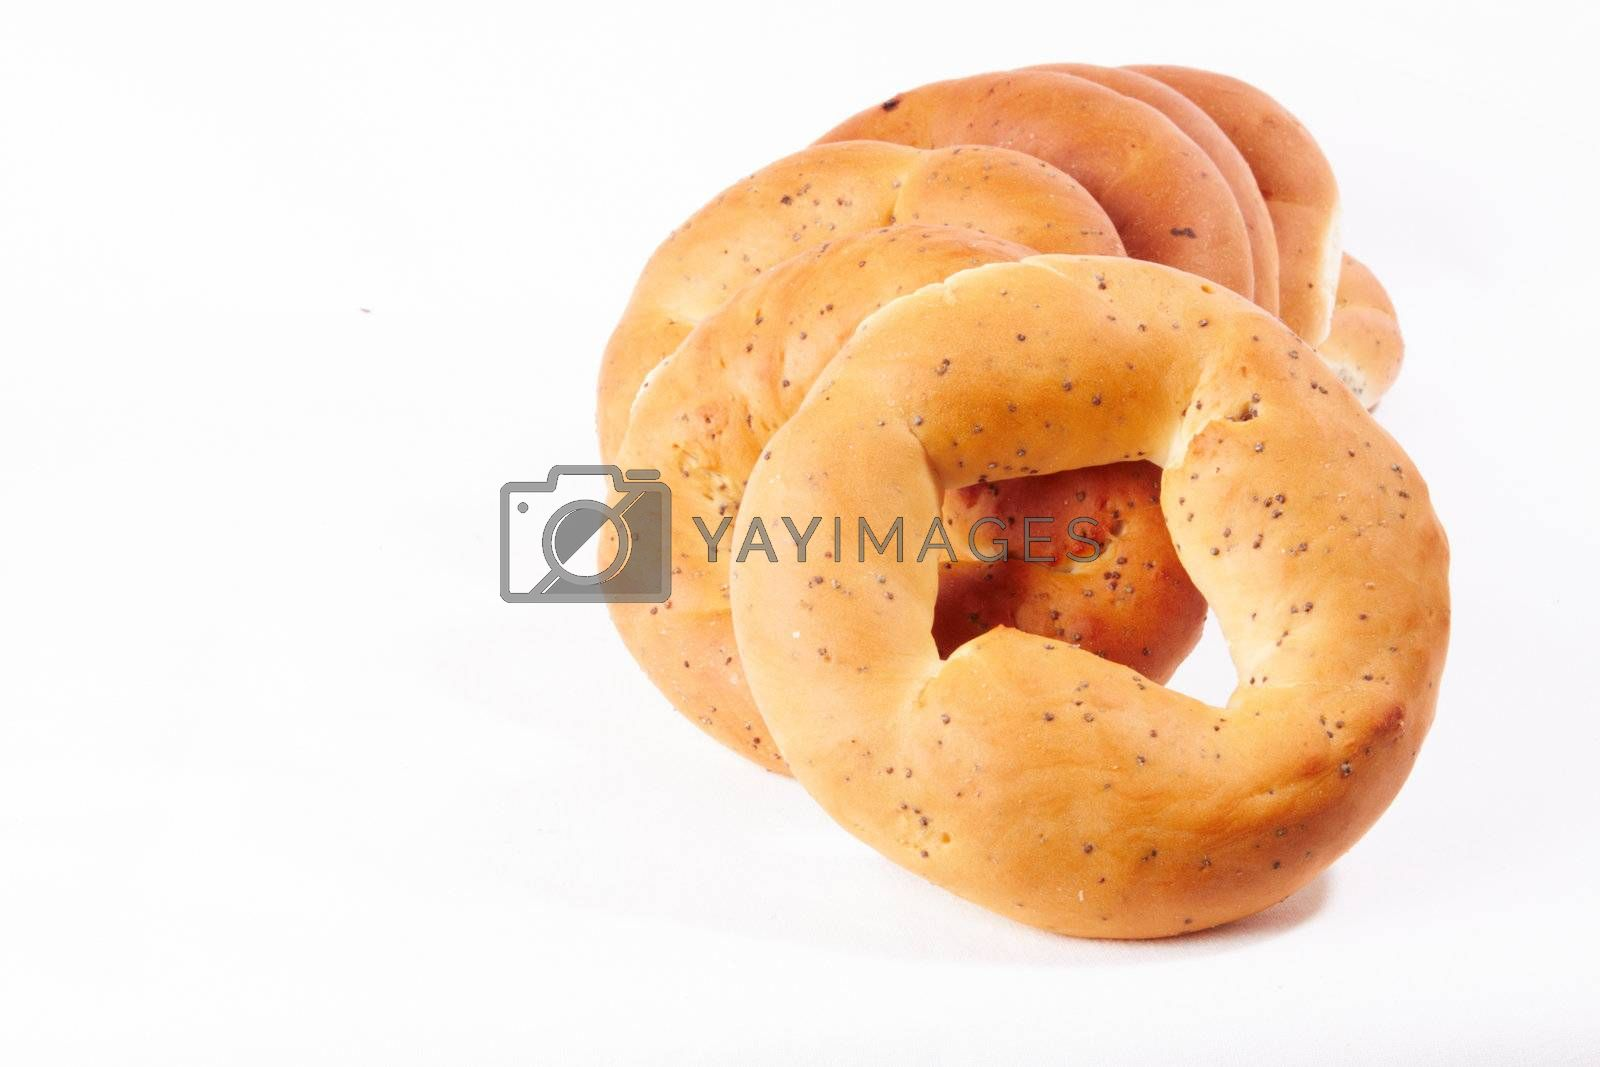 russian boublik - bread of the circular shape over white